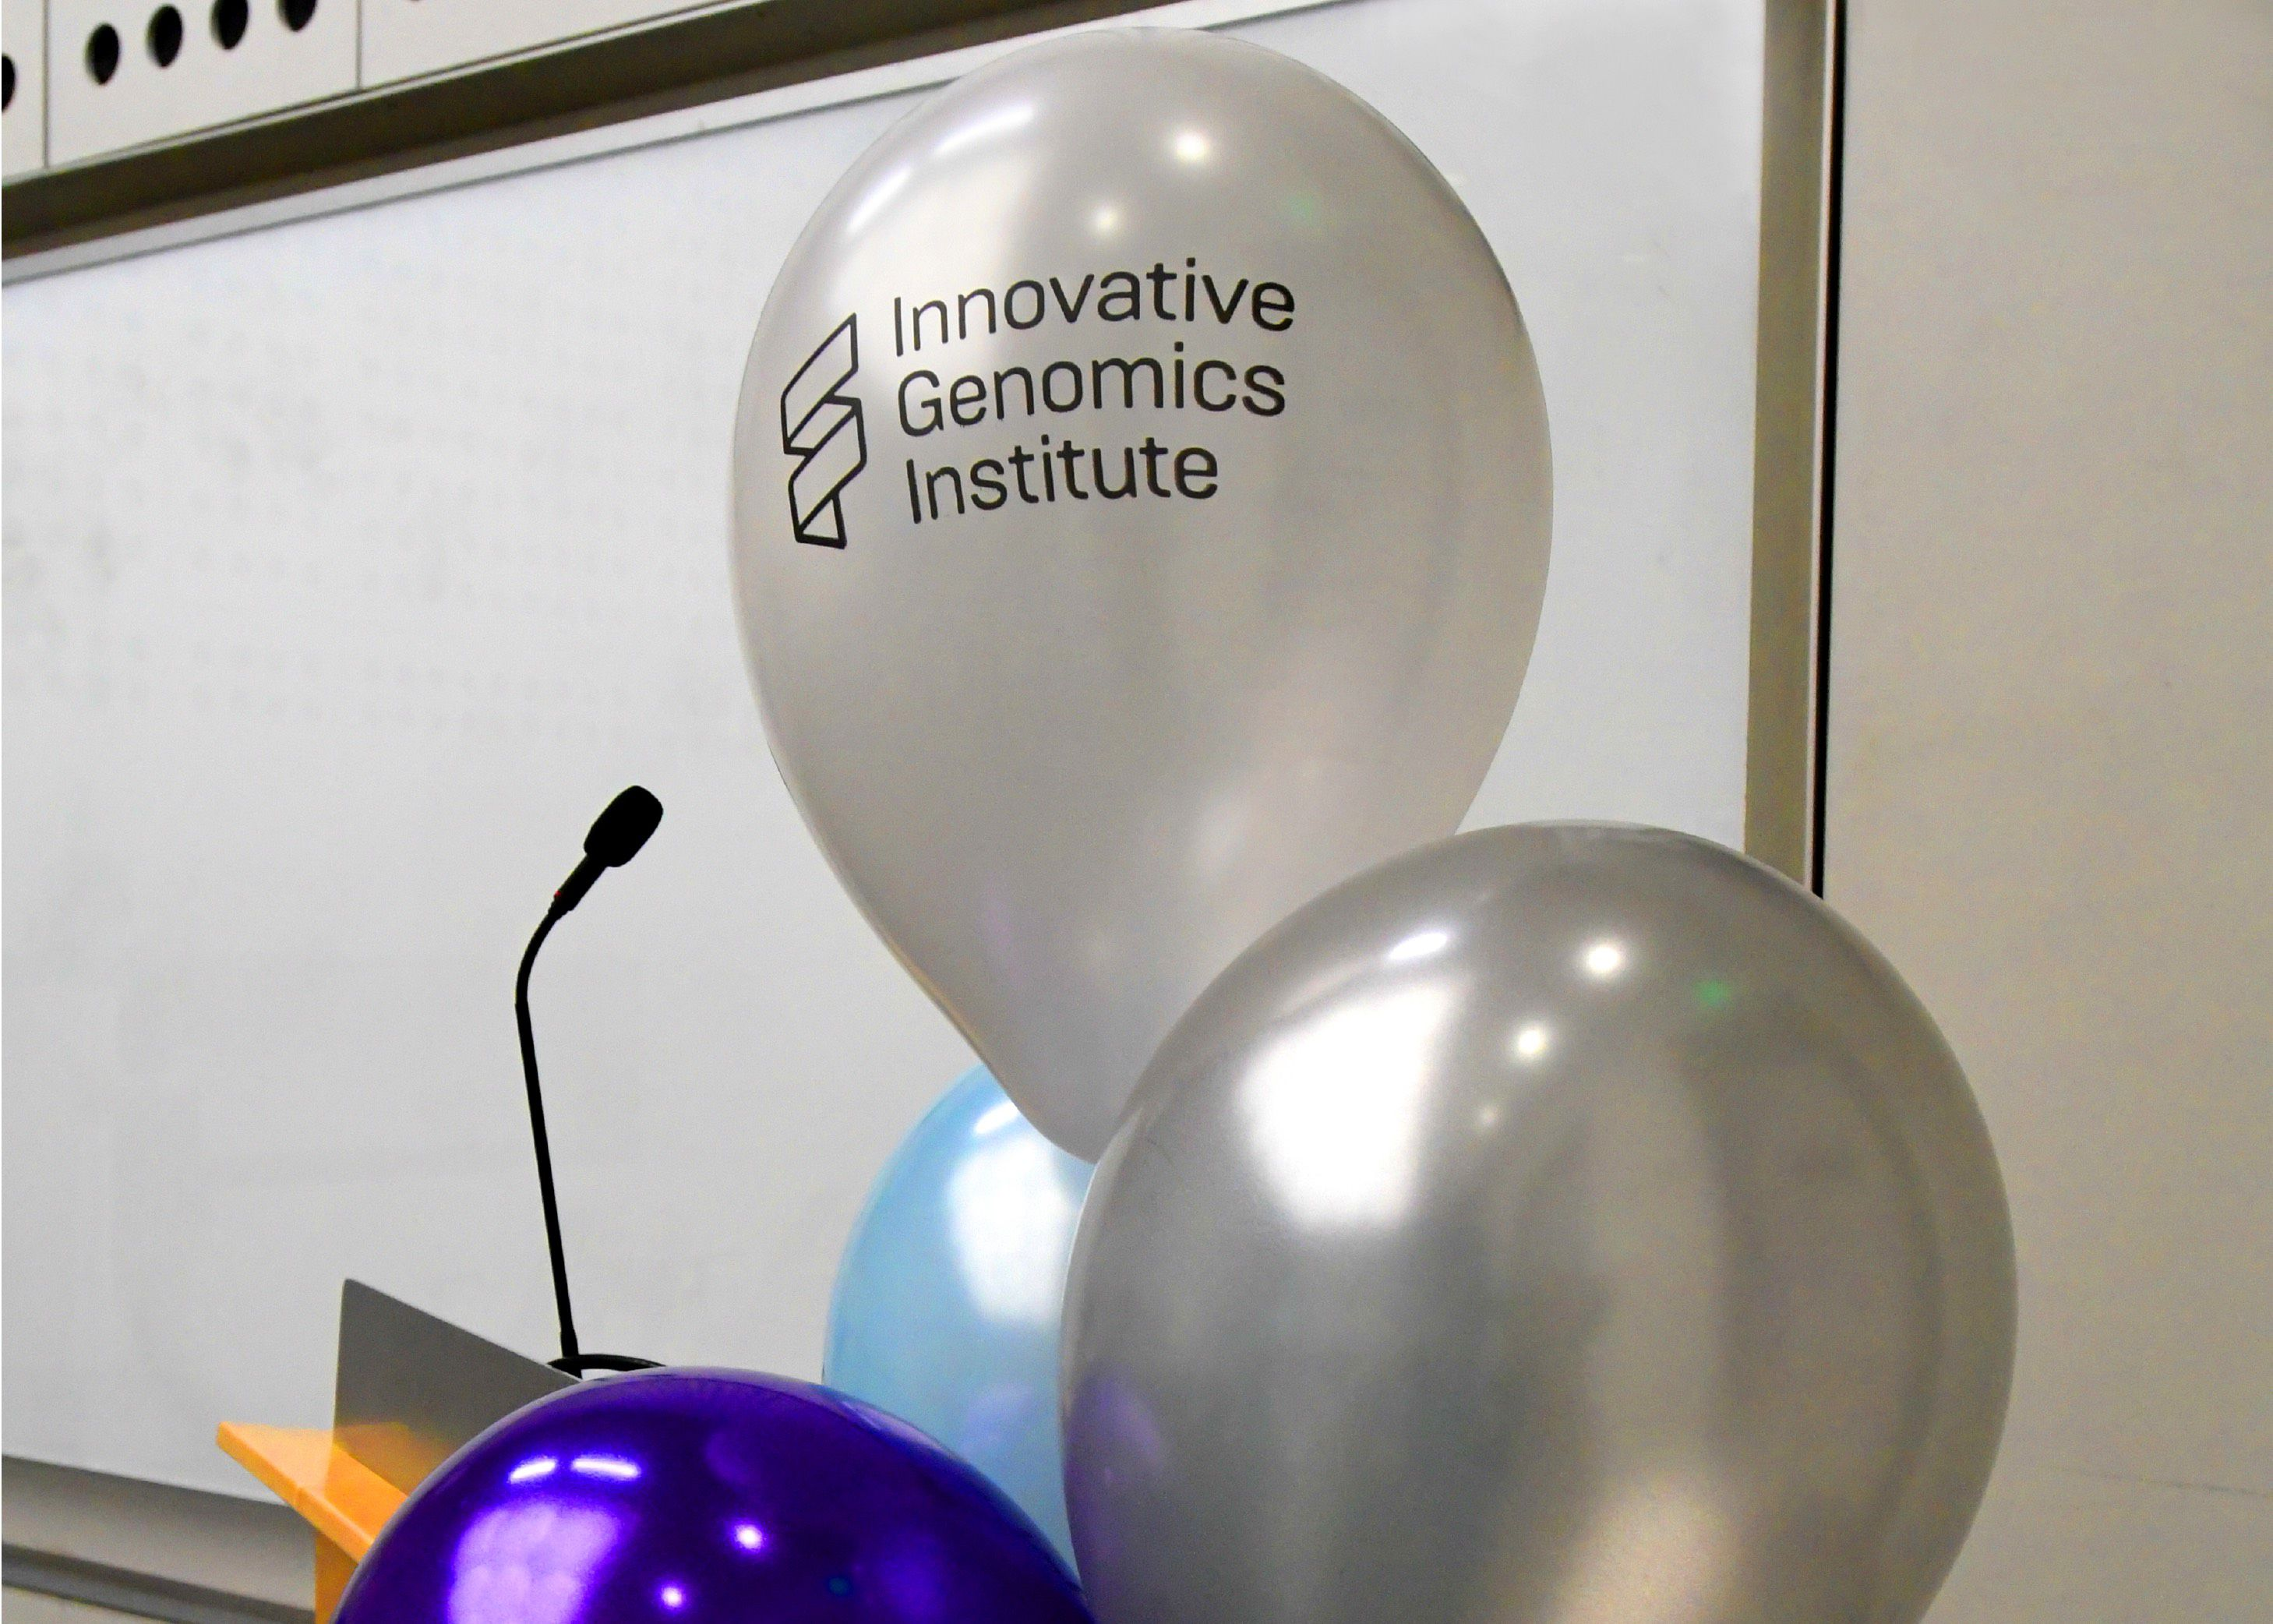 Different color balloons with the IGI logo